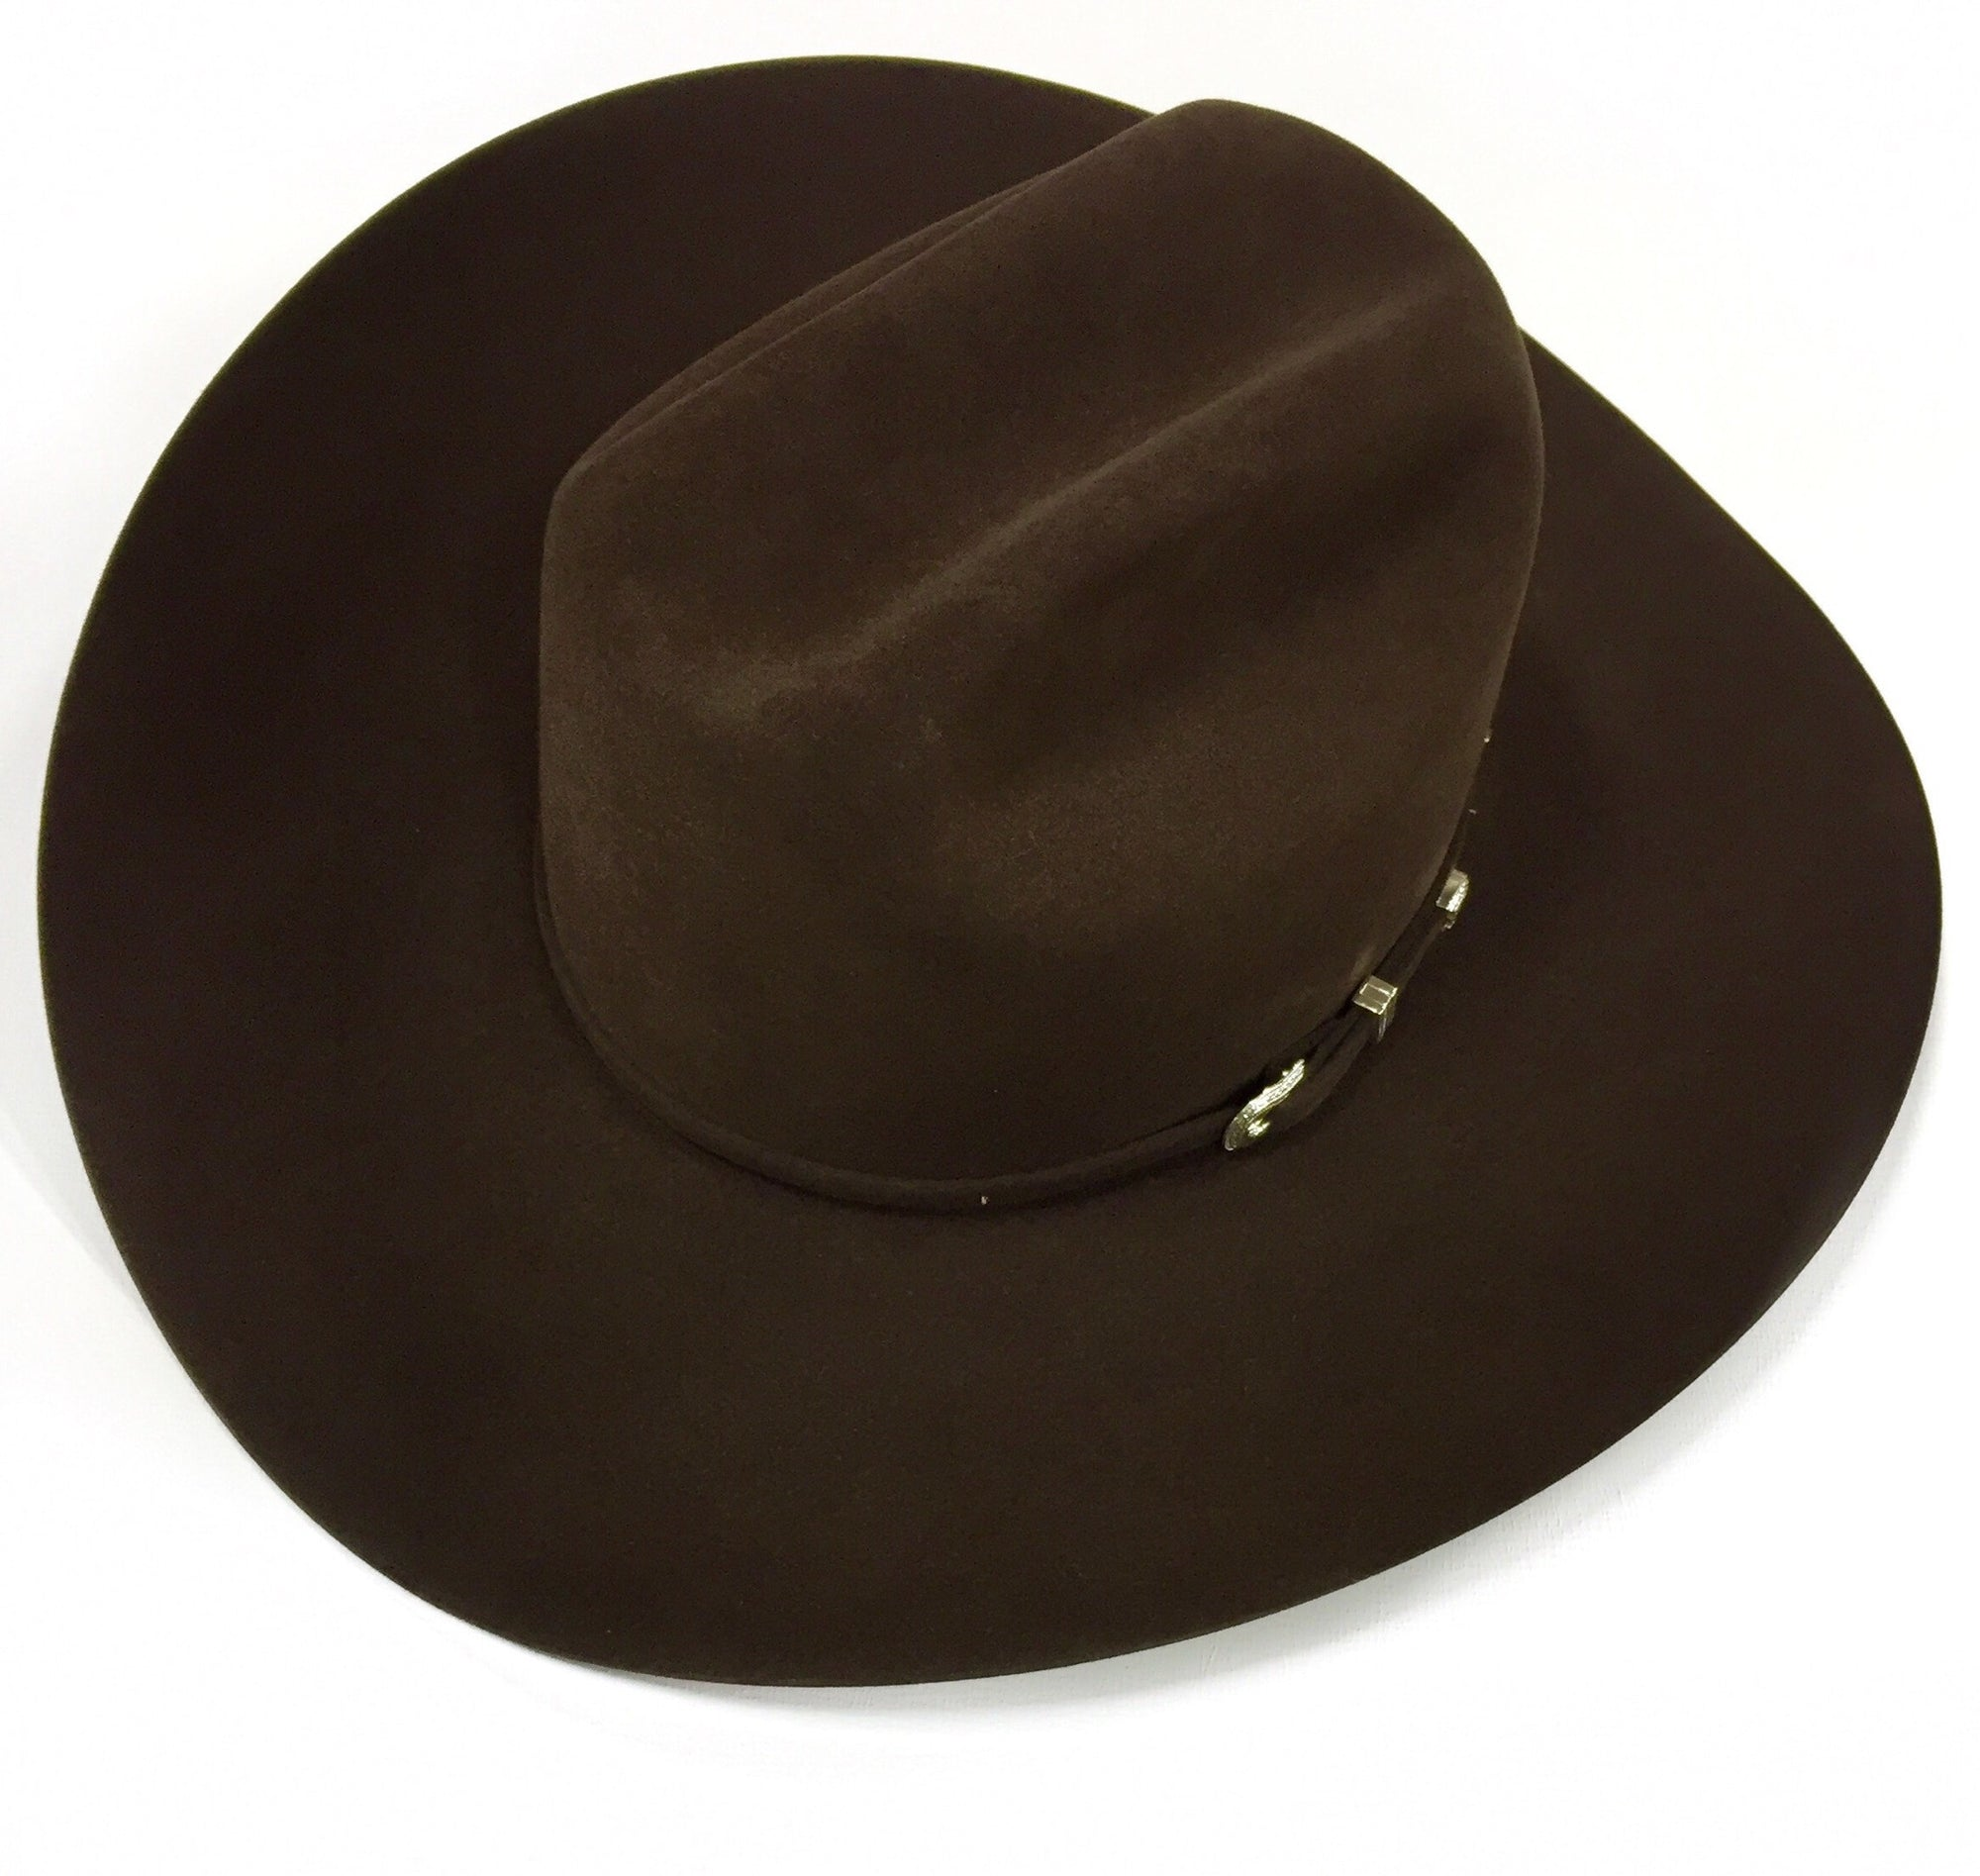 c2023f175fa76b Chocolate 7X 4 1/4 Brim Felt Hat by American Hat Co. - Lazy J Ranch Wear